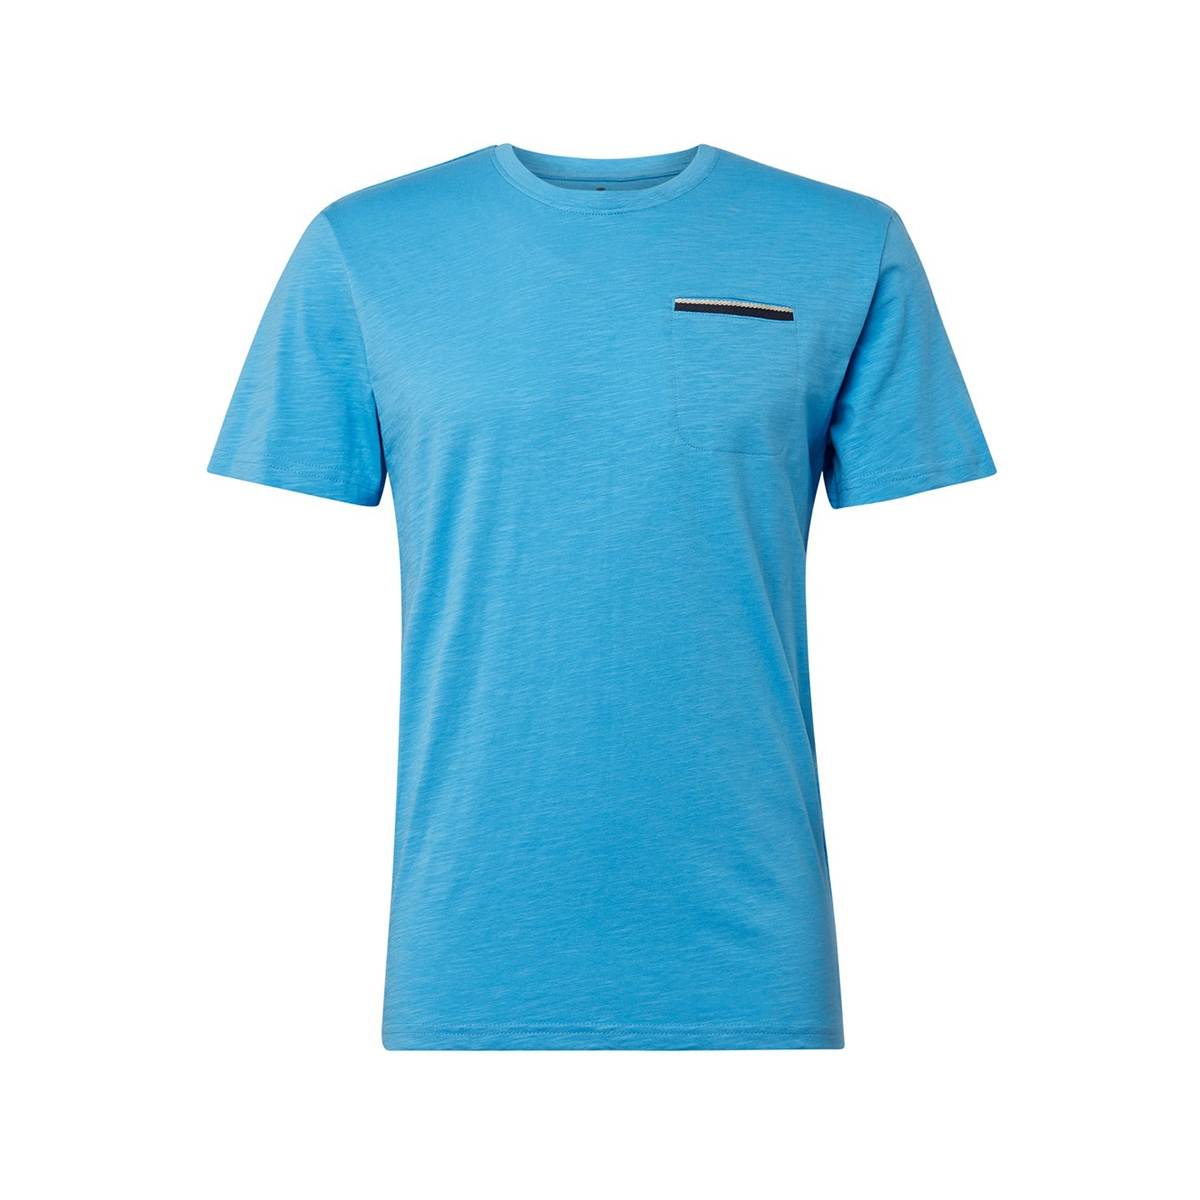 t shirt met borstzak 1012834xx10 tom tailor t-shirt 18395